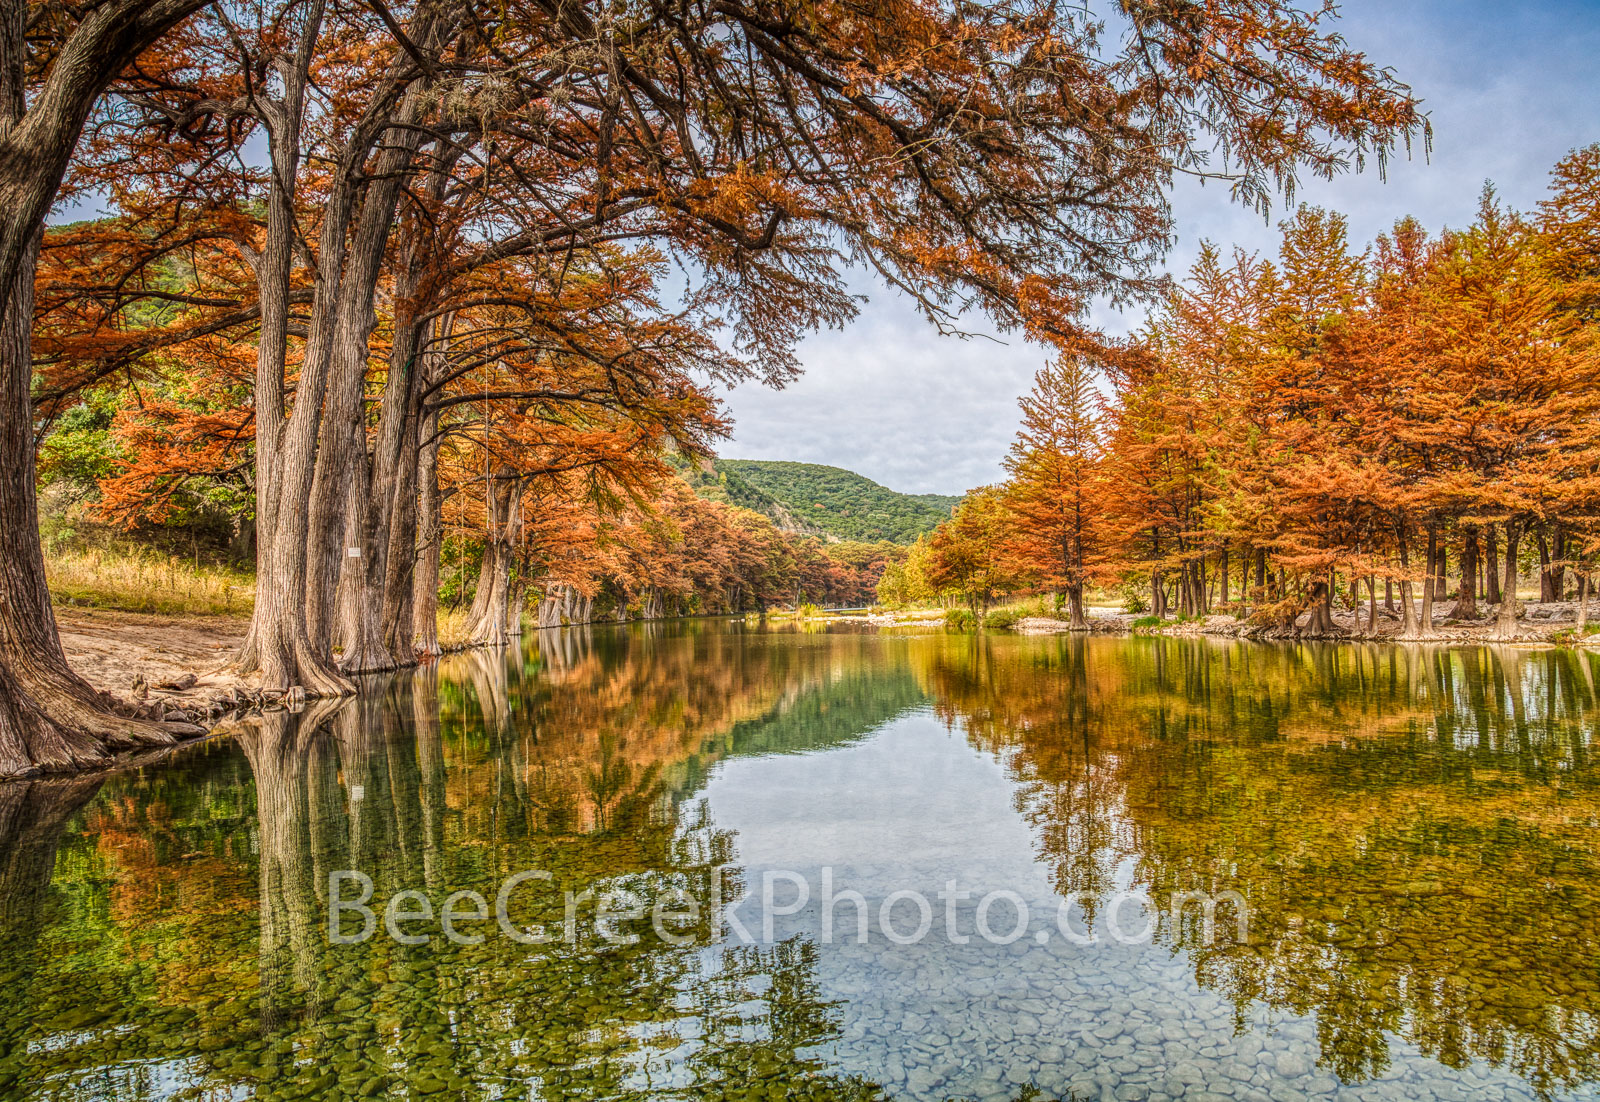 Texas, autumn, hill country, texas hill country, frio river, rivers, cypress, trees, fall scenery, yellow, orange, clear water, rocks, pebbles, fall season,  garner, river, texas rivers, spring fed, , photo